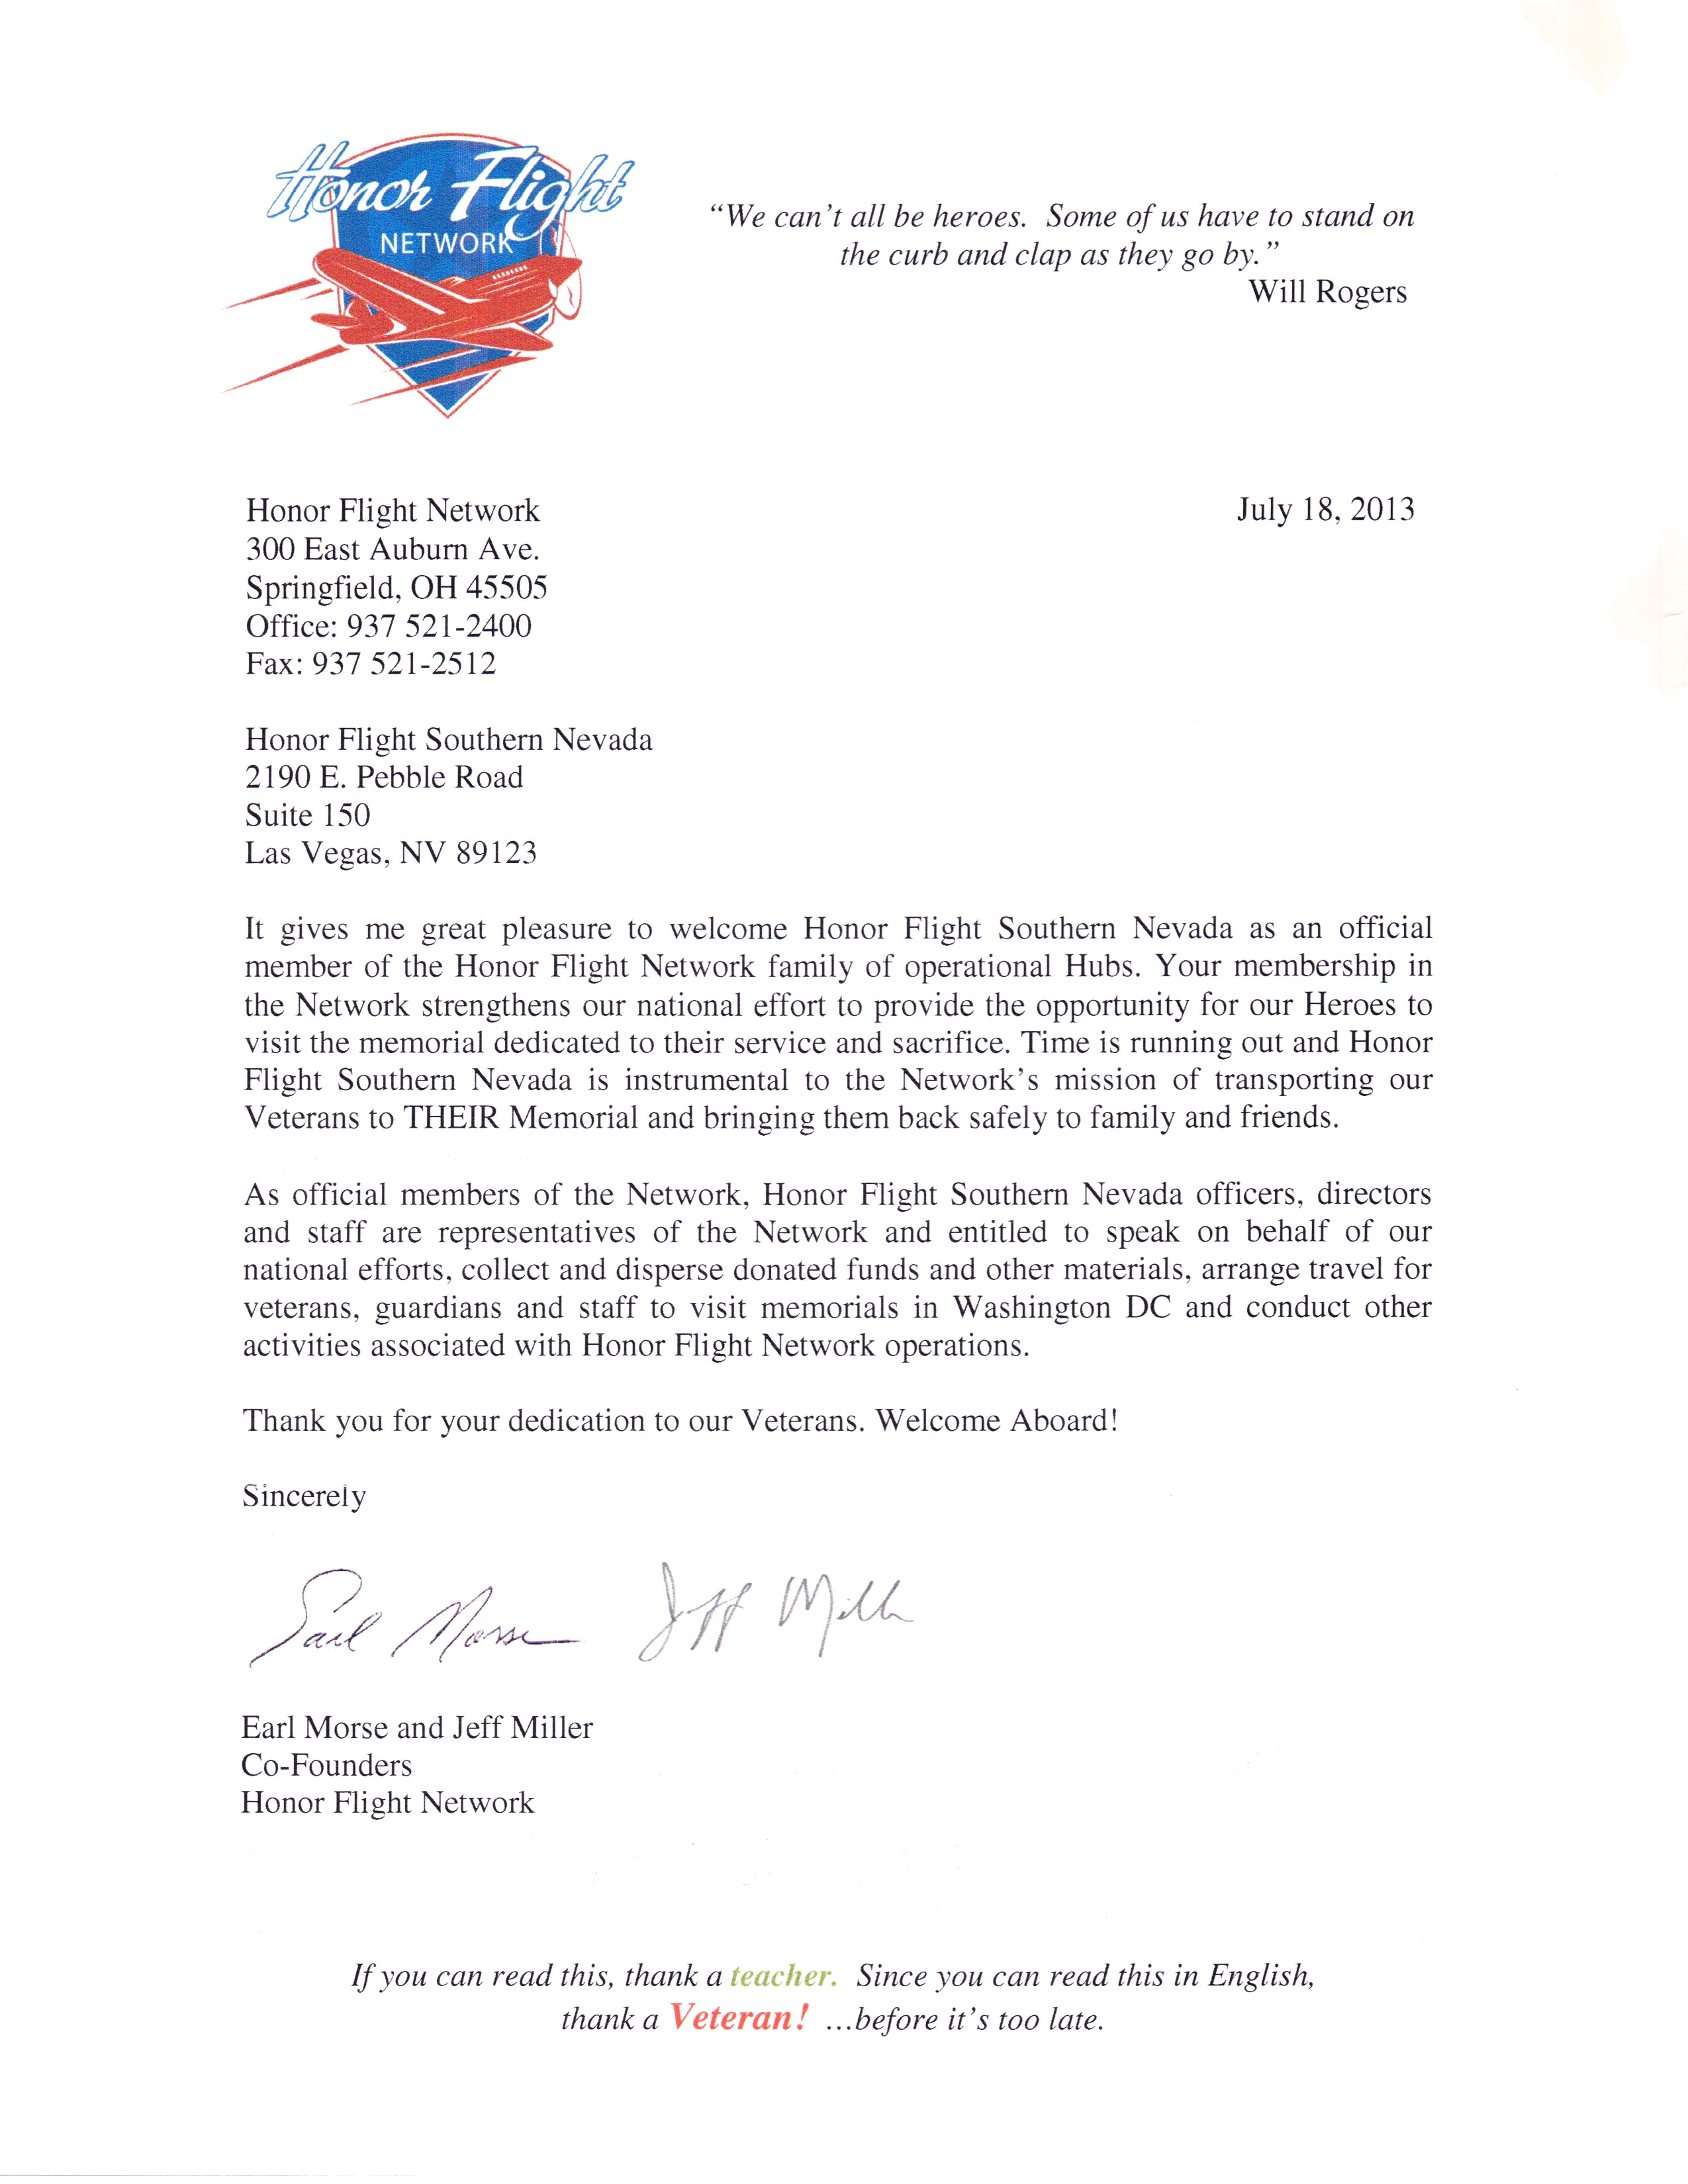 a report on the honor flight network and writing letters for it